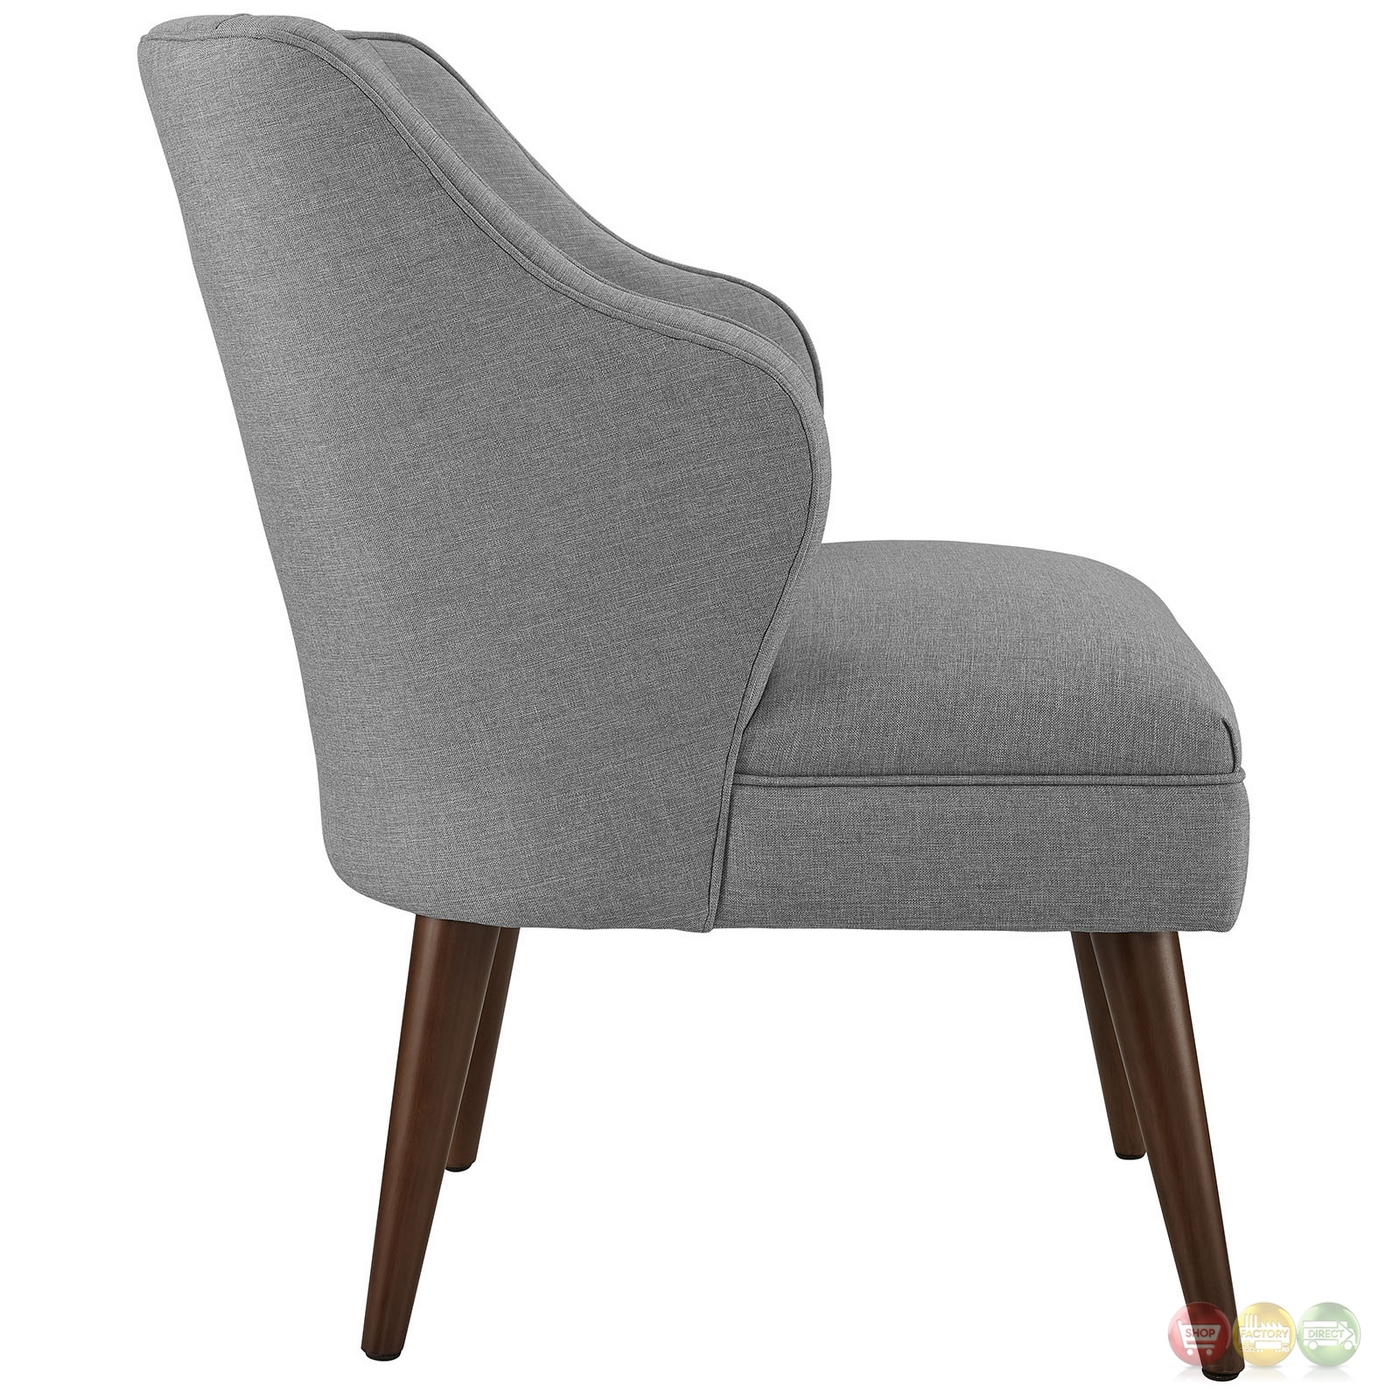 Swell modern fabric upholstered armchair with dowel wood for Armchair builder